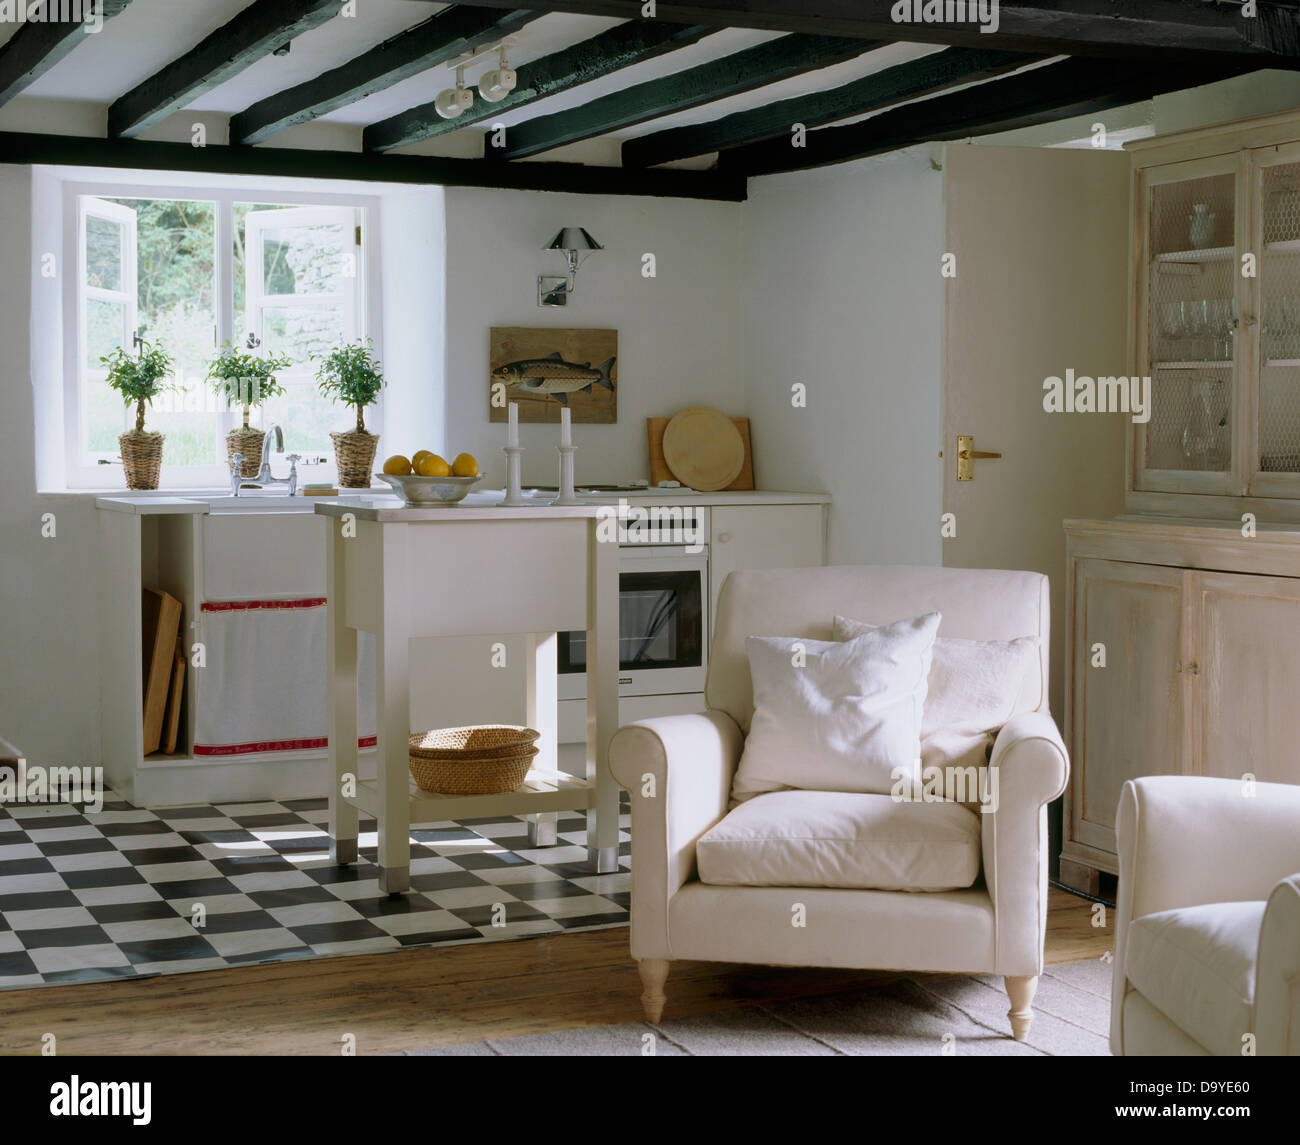 Black White Tiled Floor In White Country Cottage Kitchen Open To A